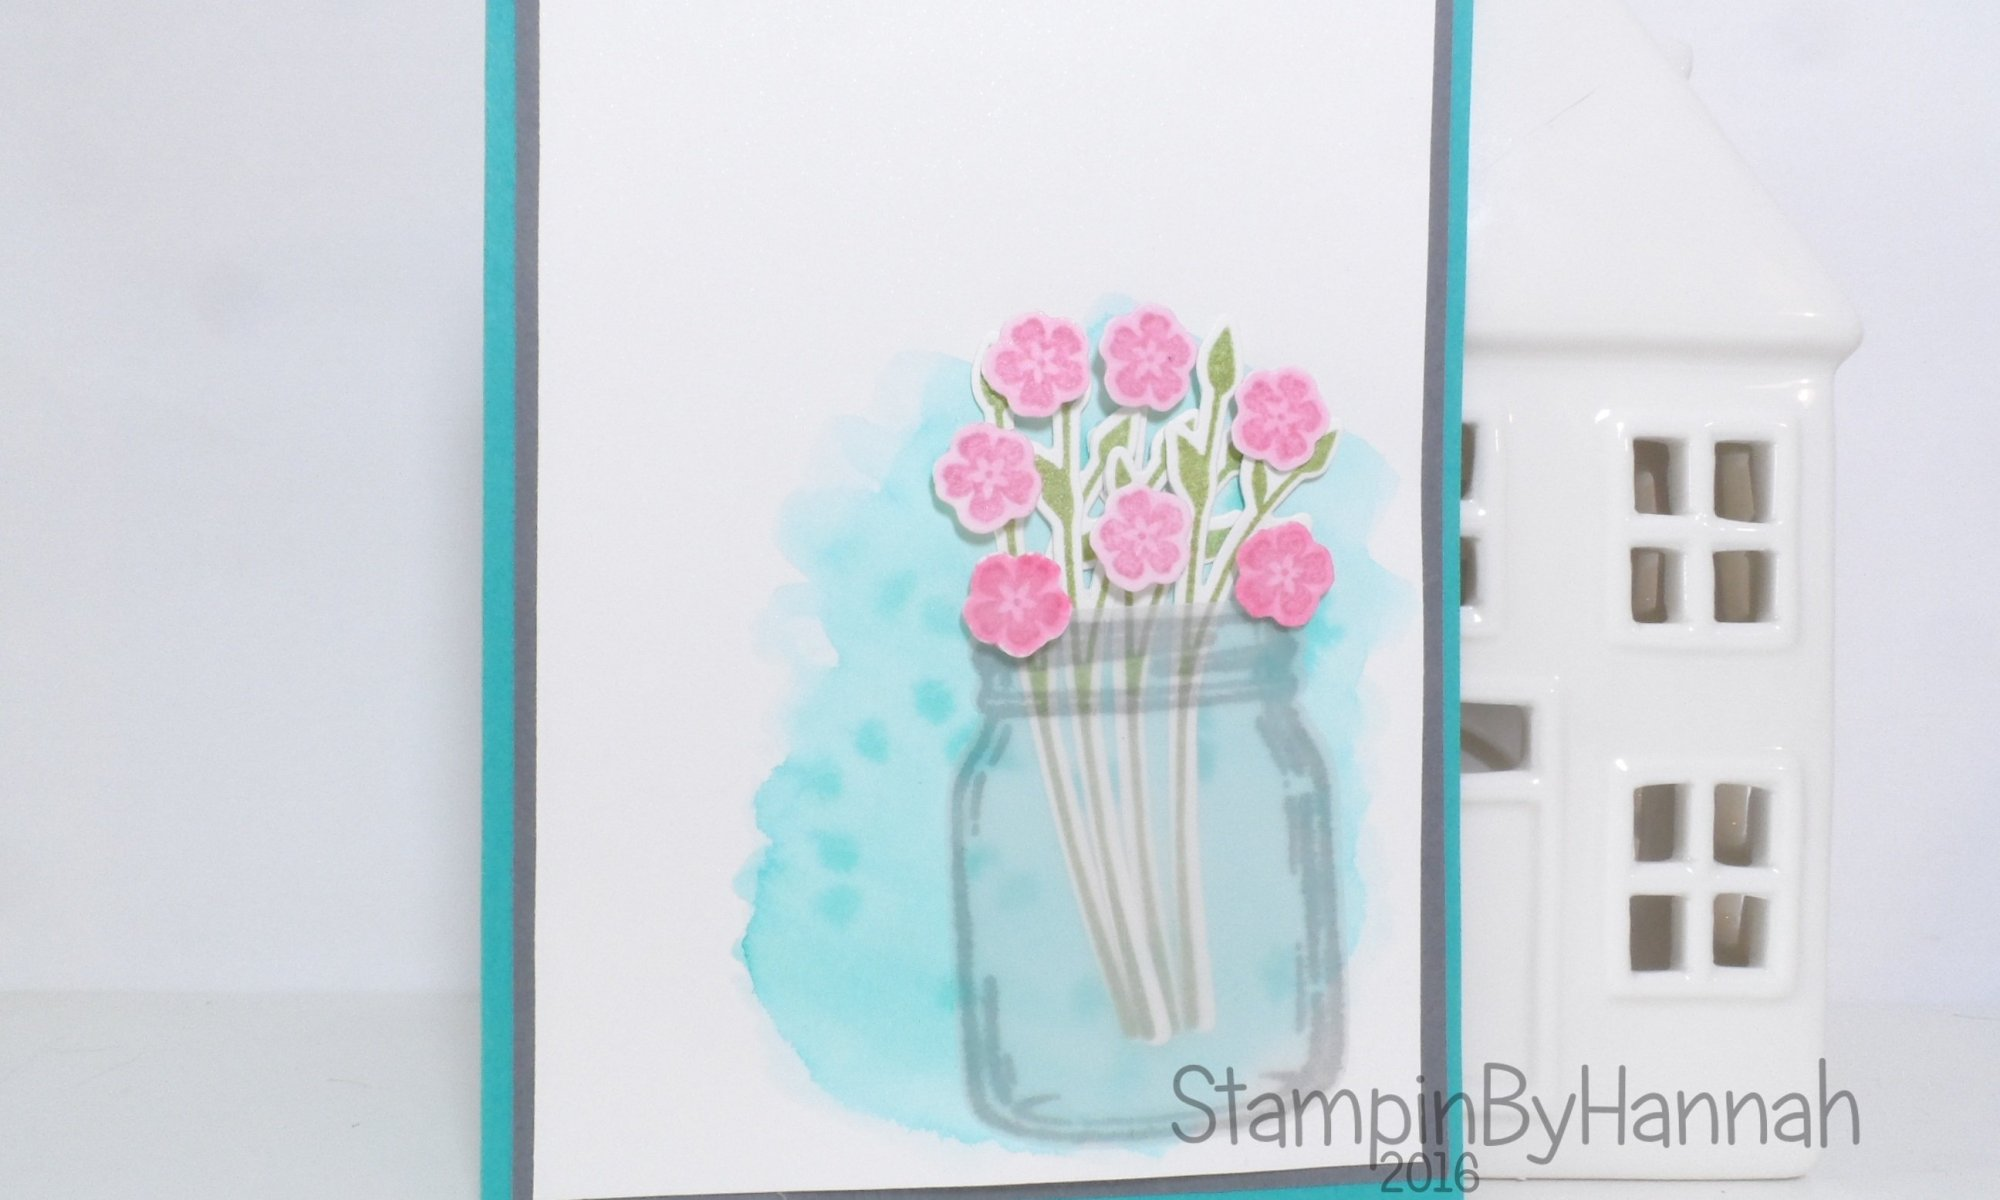 Pinkies Team Design Challenge Colouring Watercolour with Jar of Love from Stampin' Up! UK